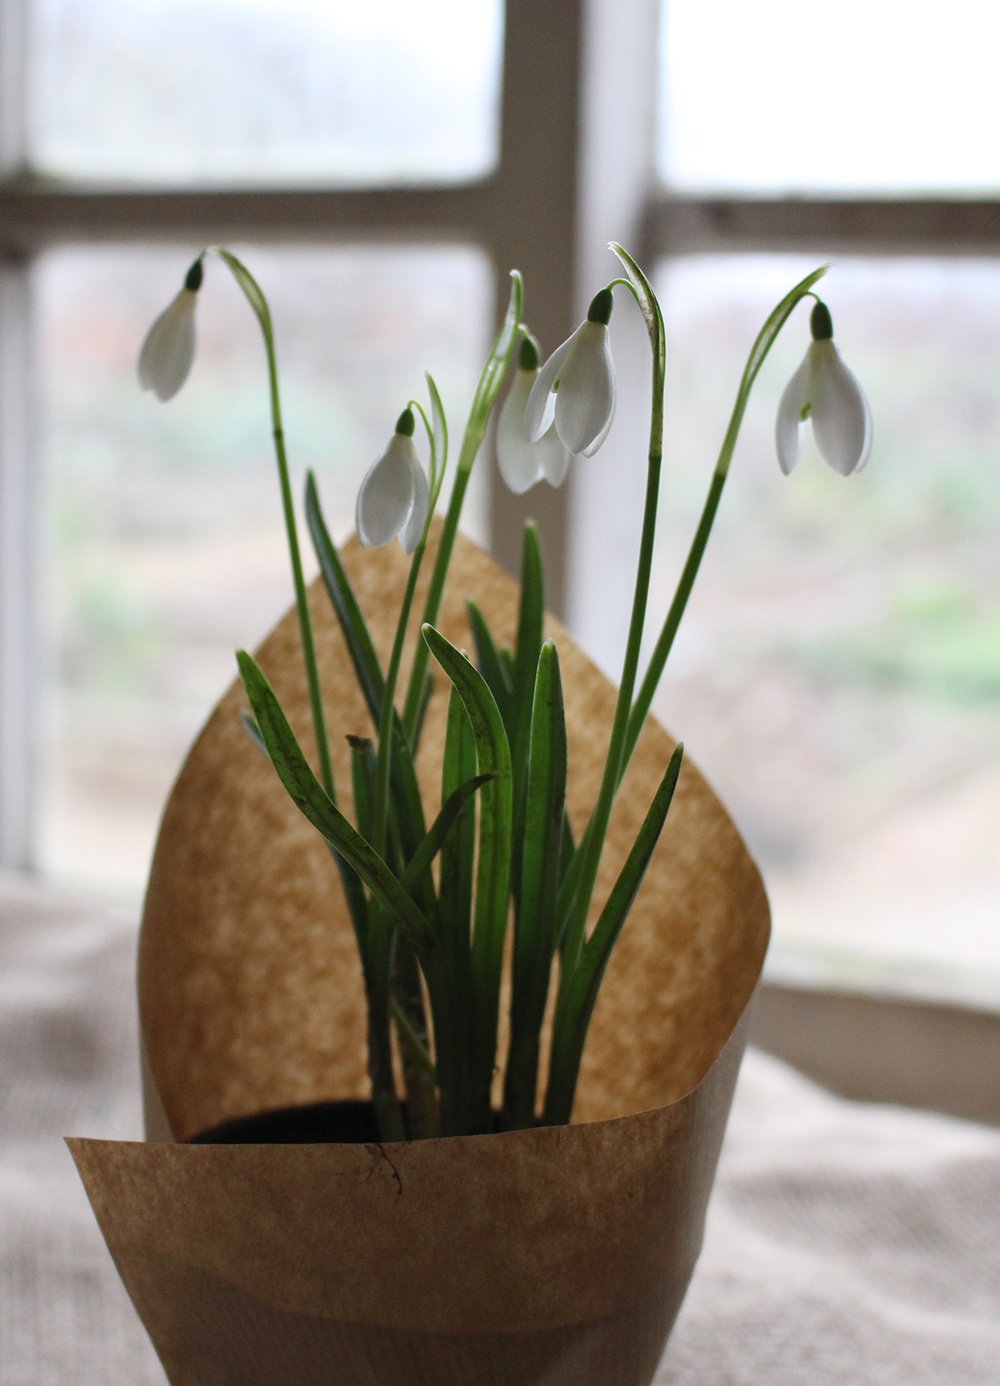 Snowdrops in paper and pot